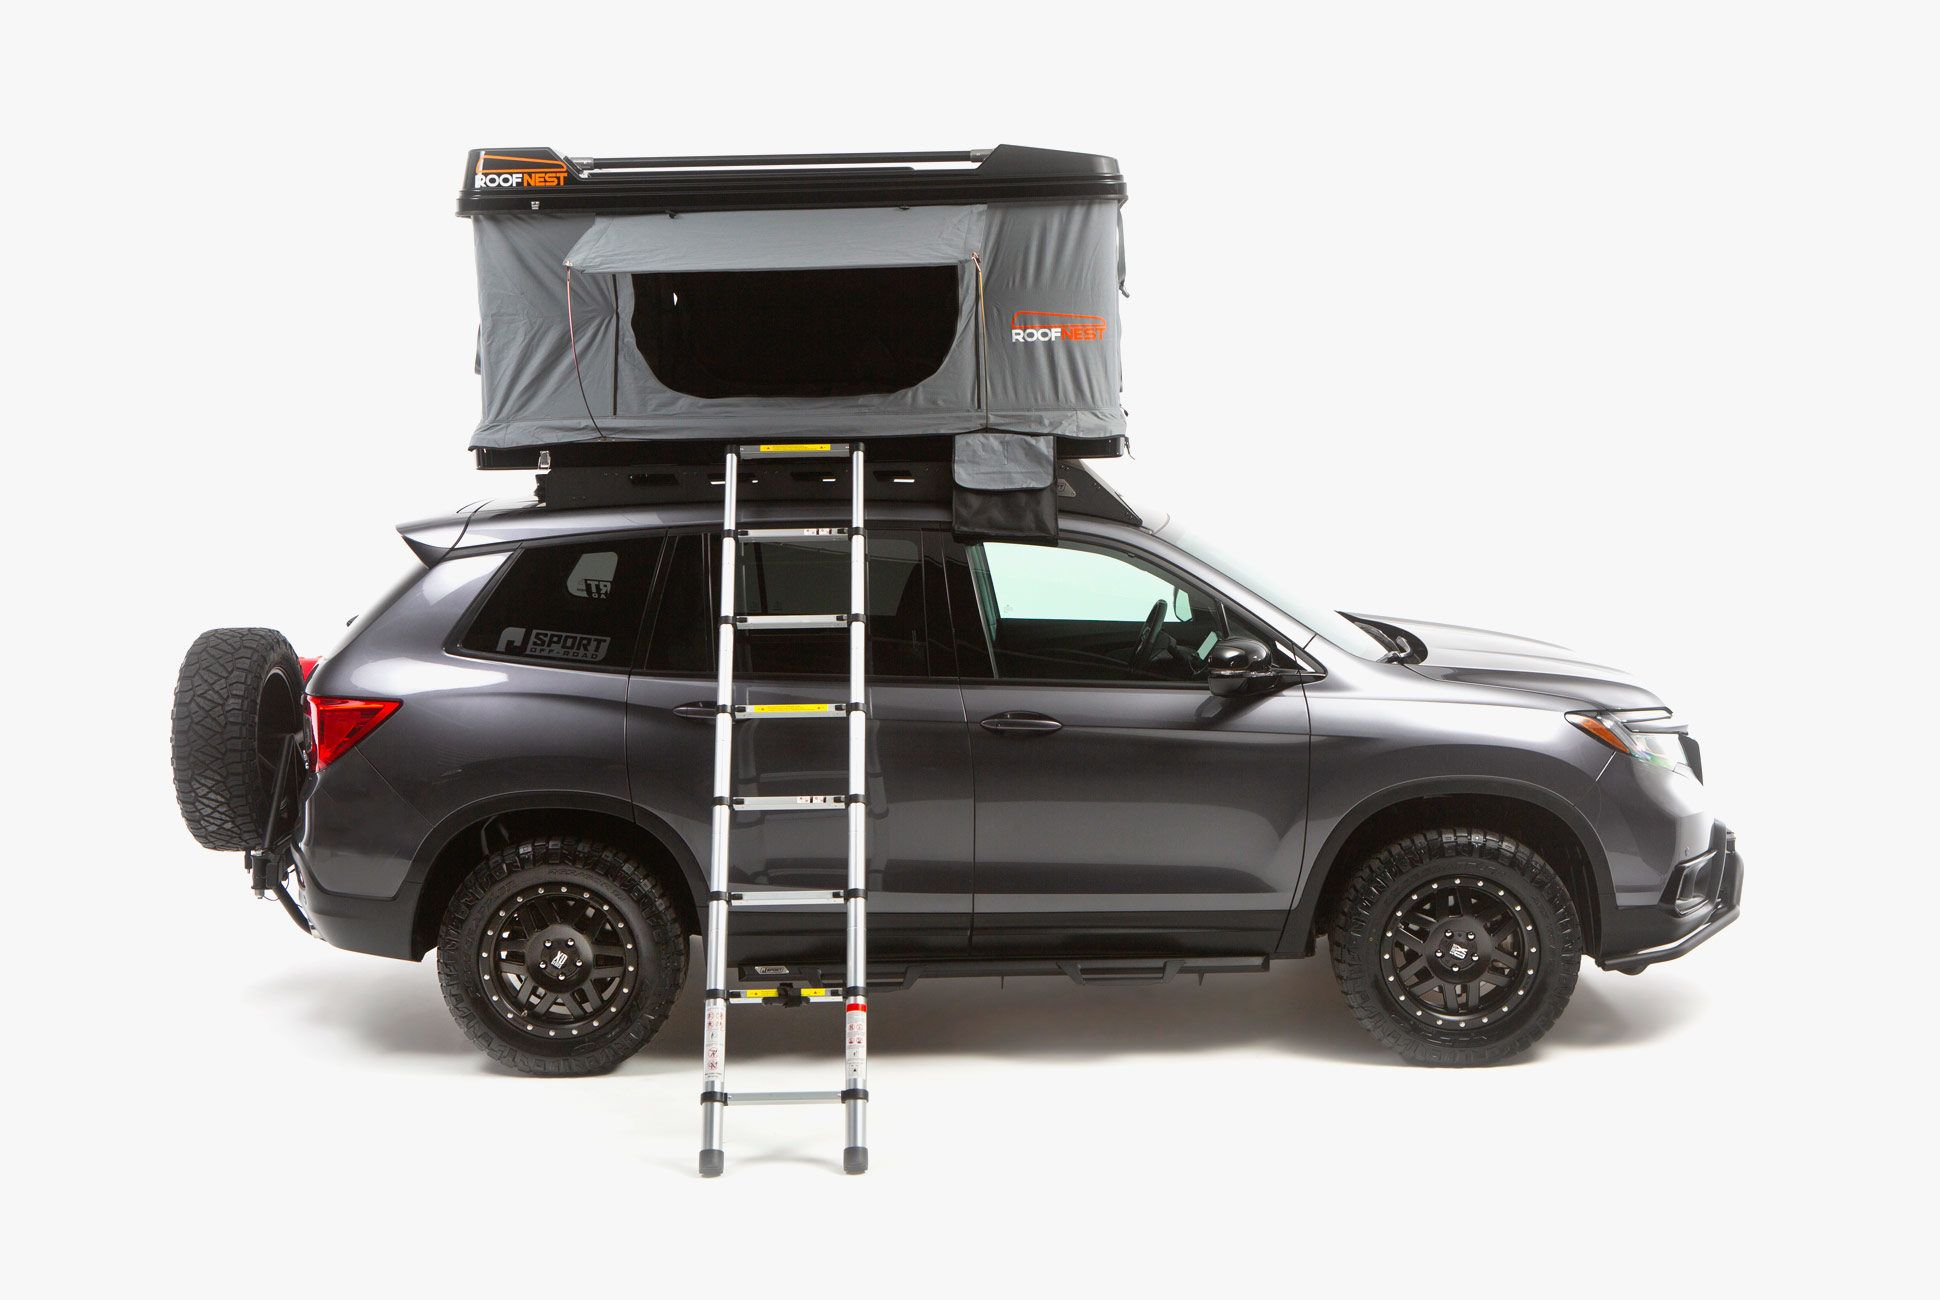 Honda-Passport-Overlander-gear-patrol-slide-3